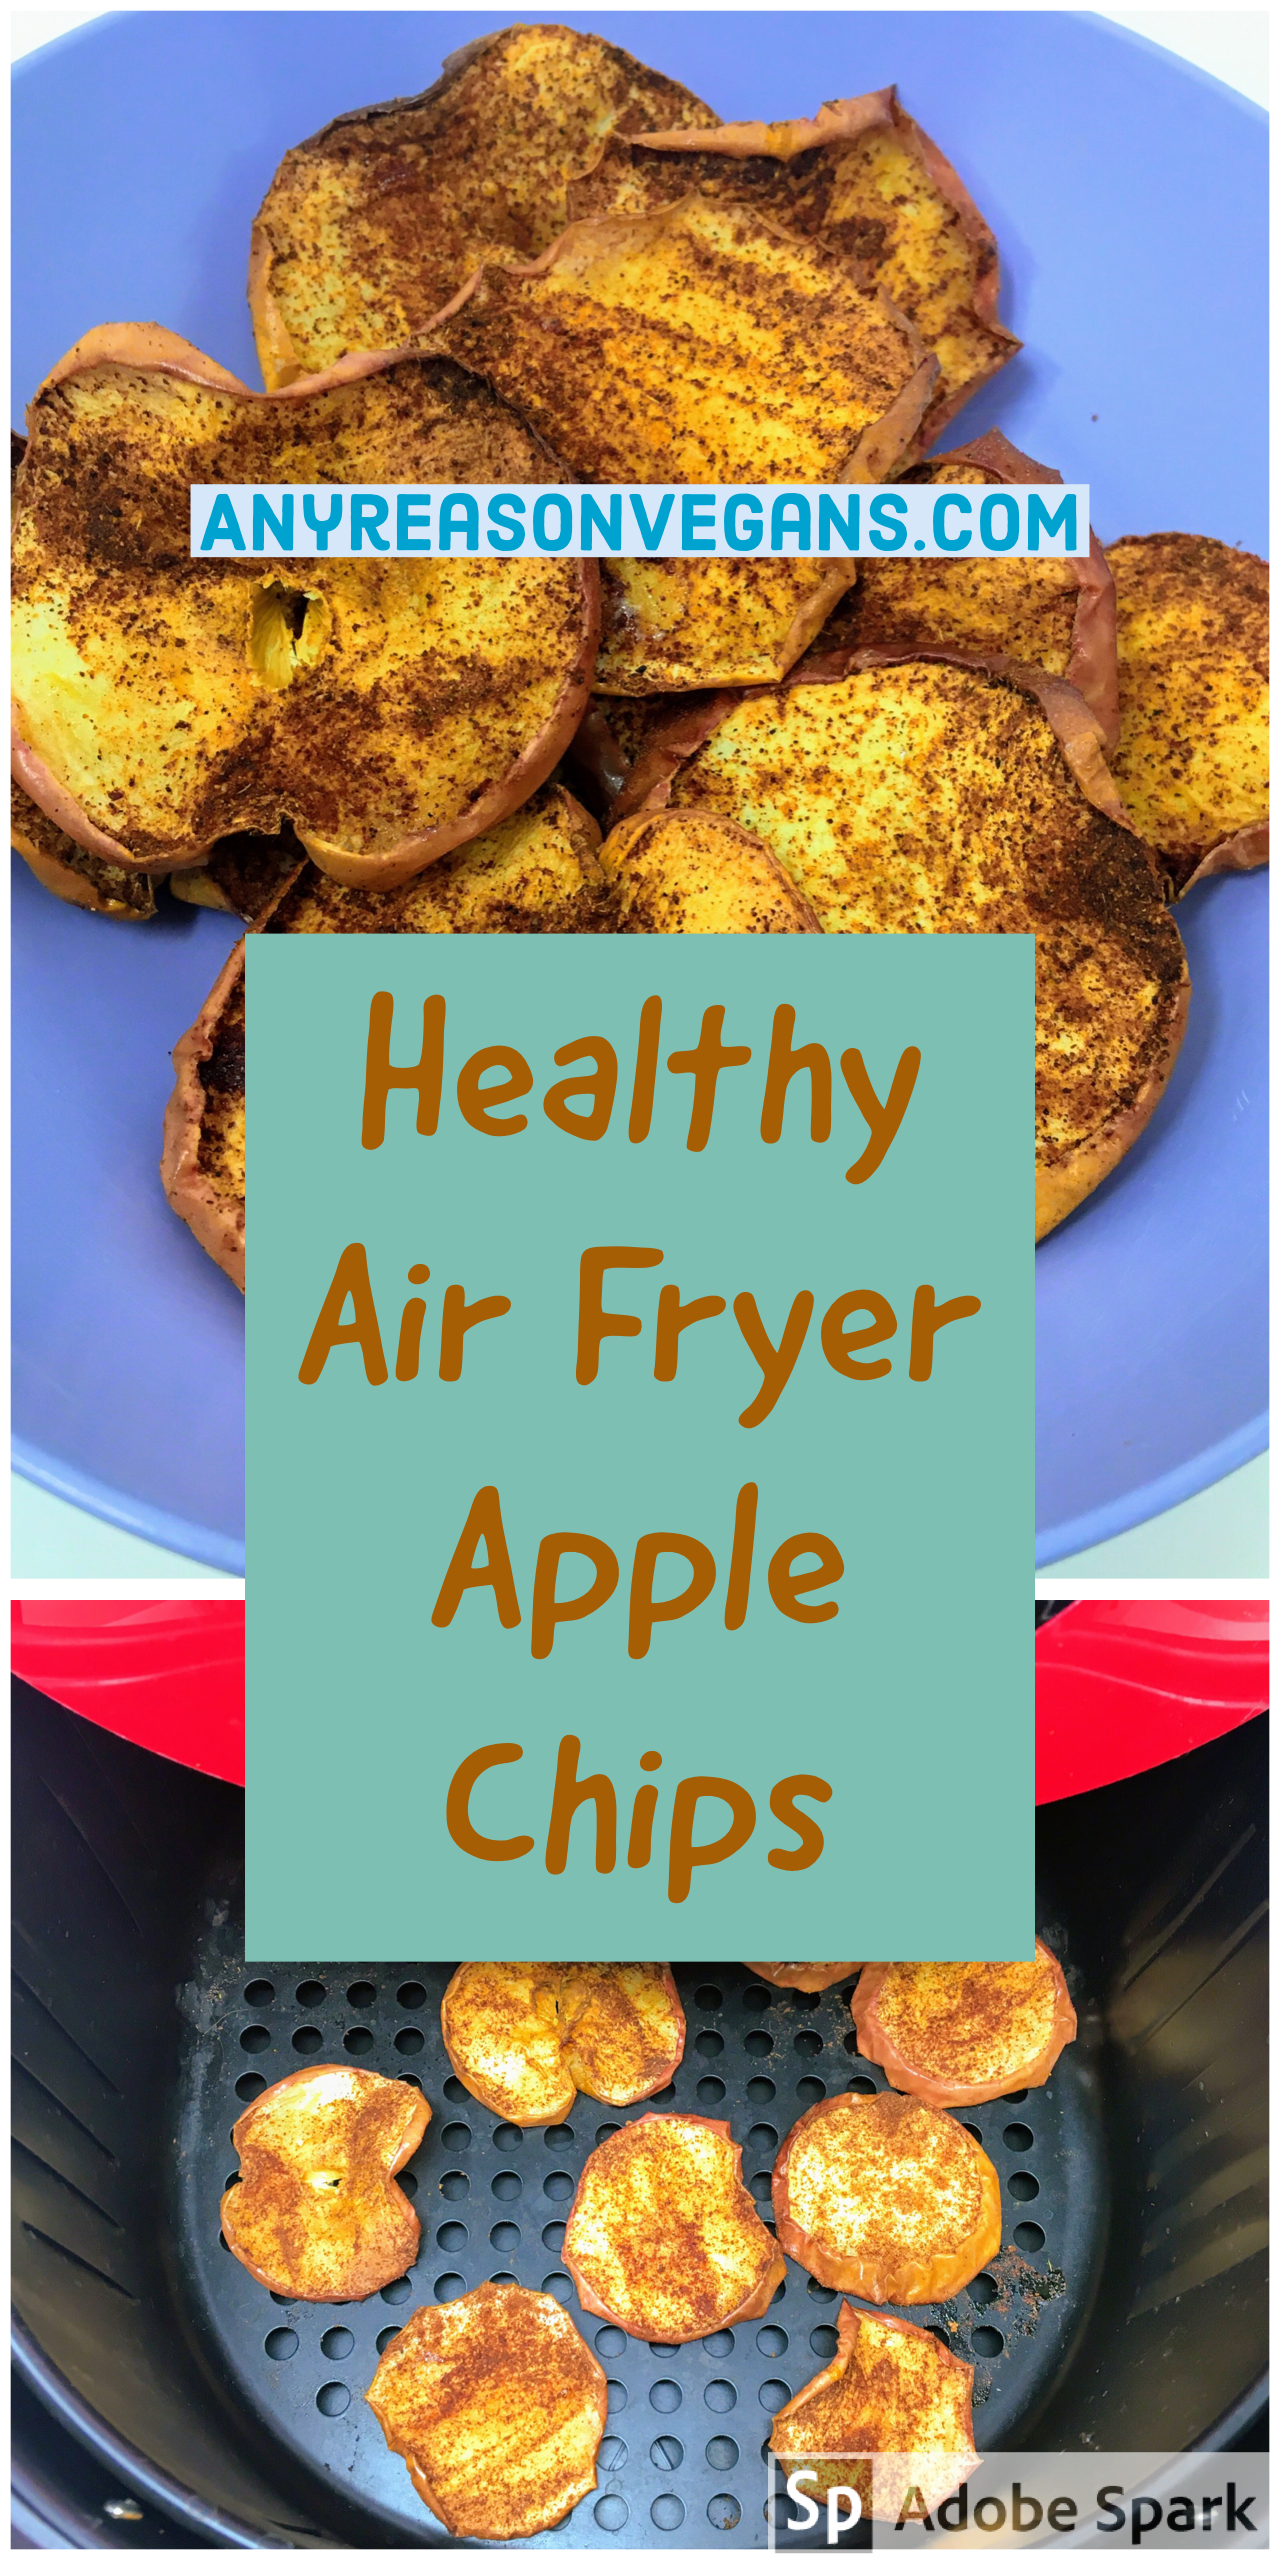 Air Fryer Apple Chips Recipe in 2020 Apple chips